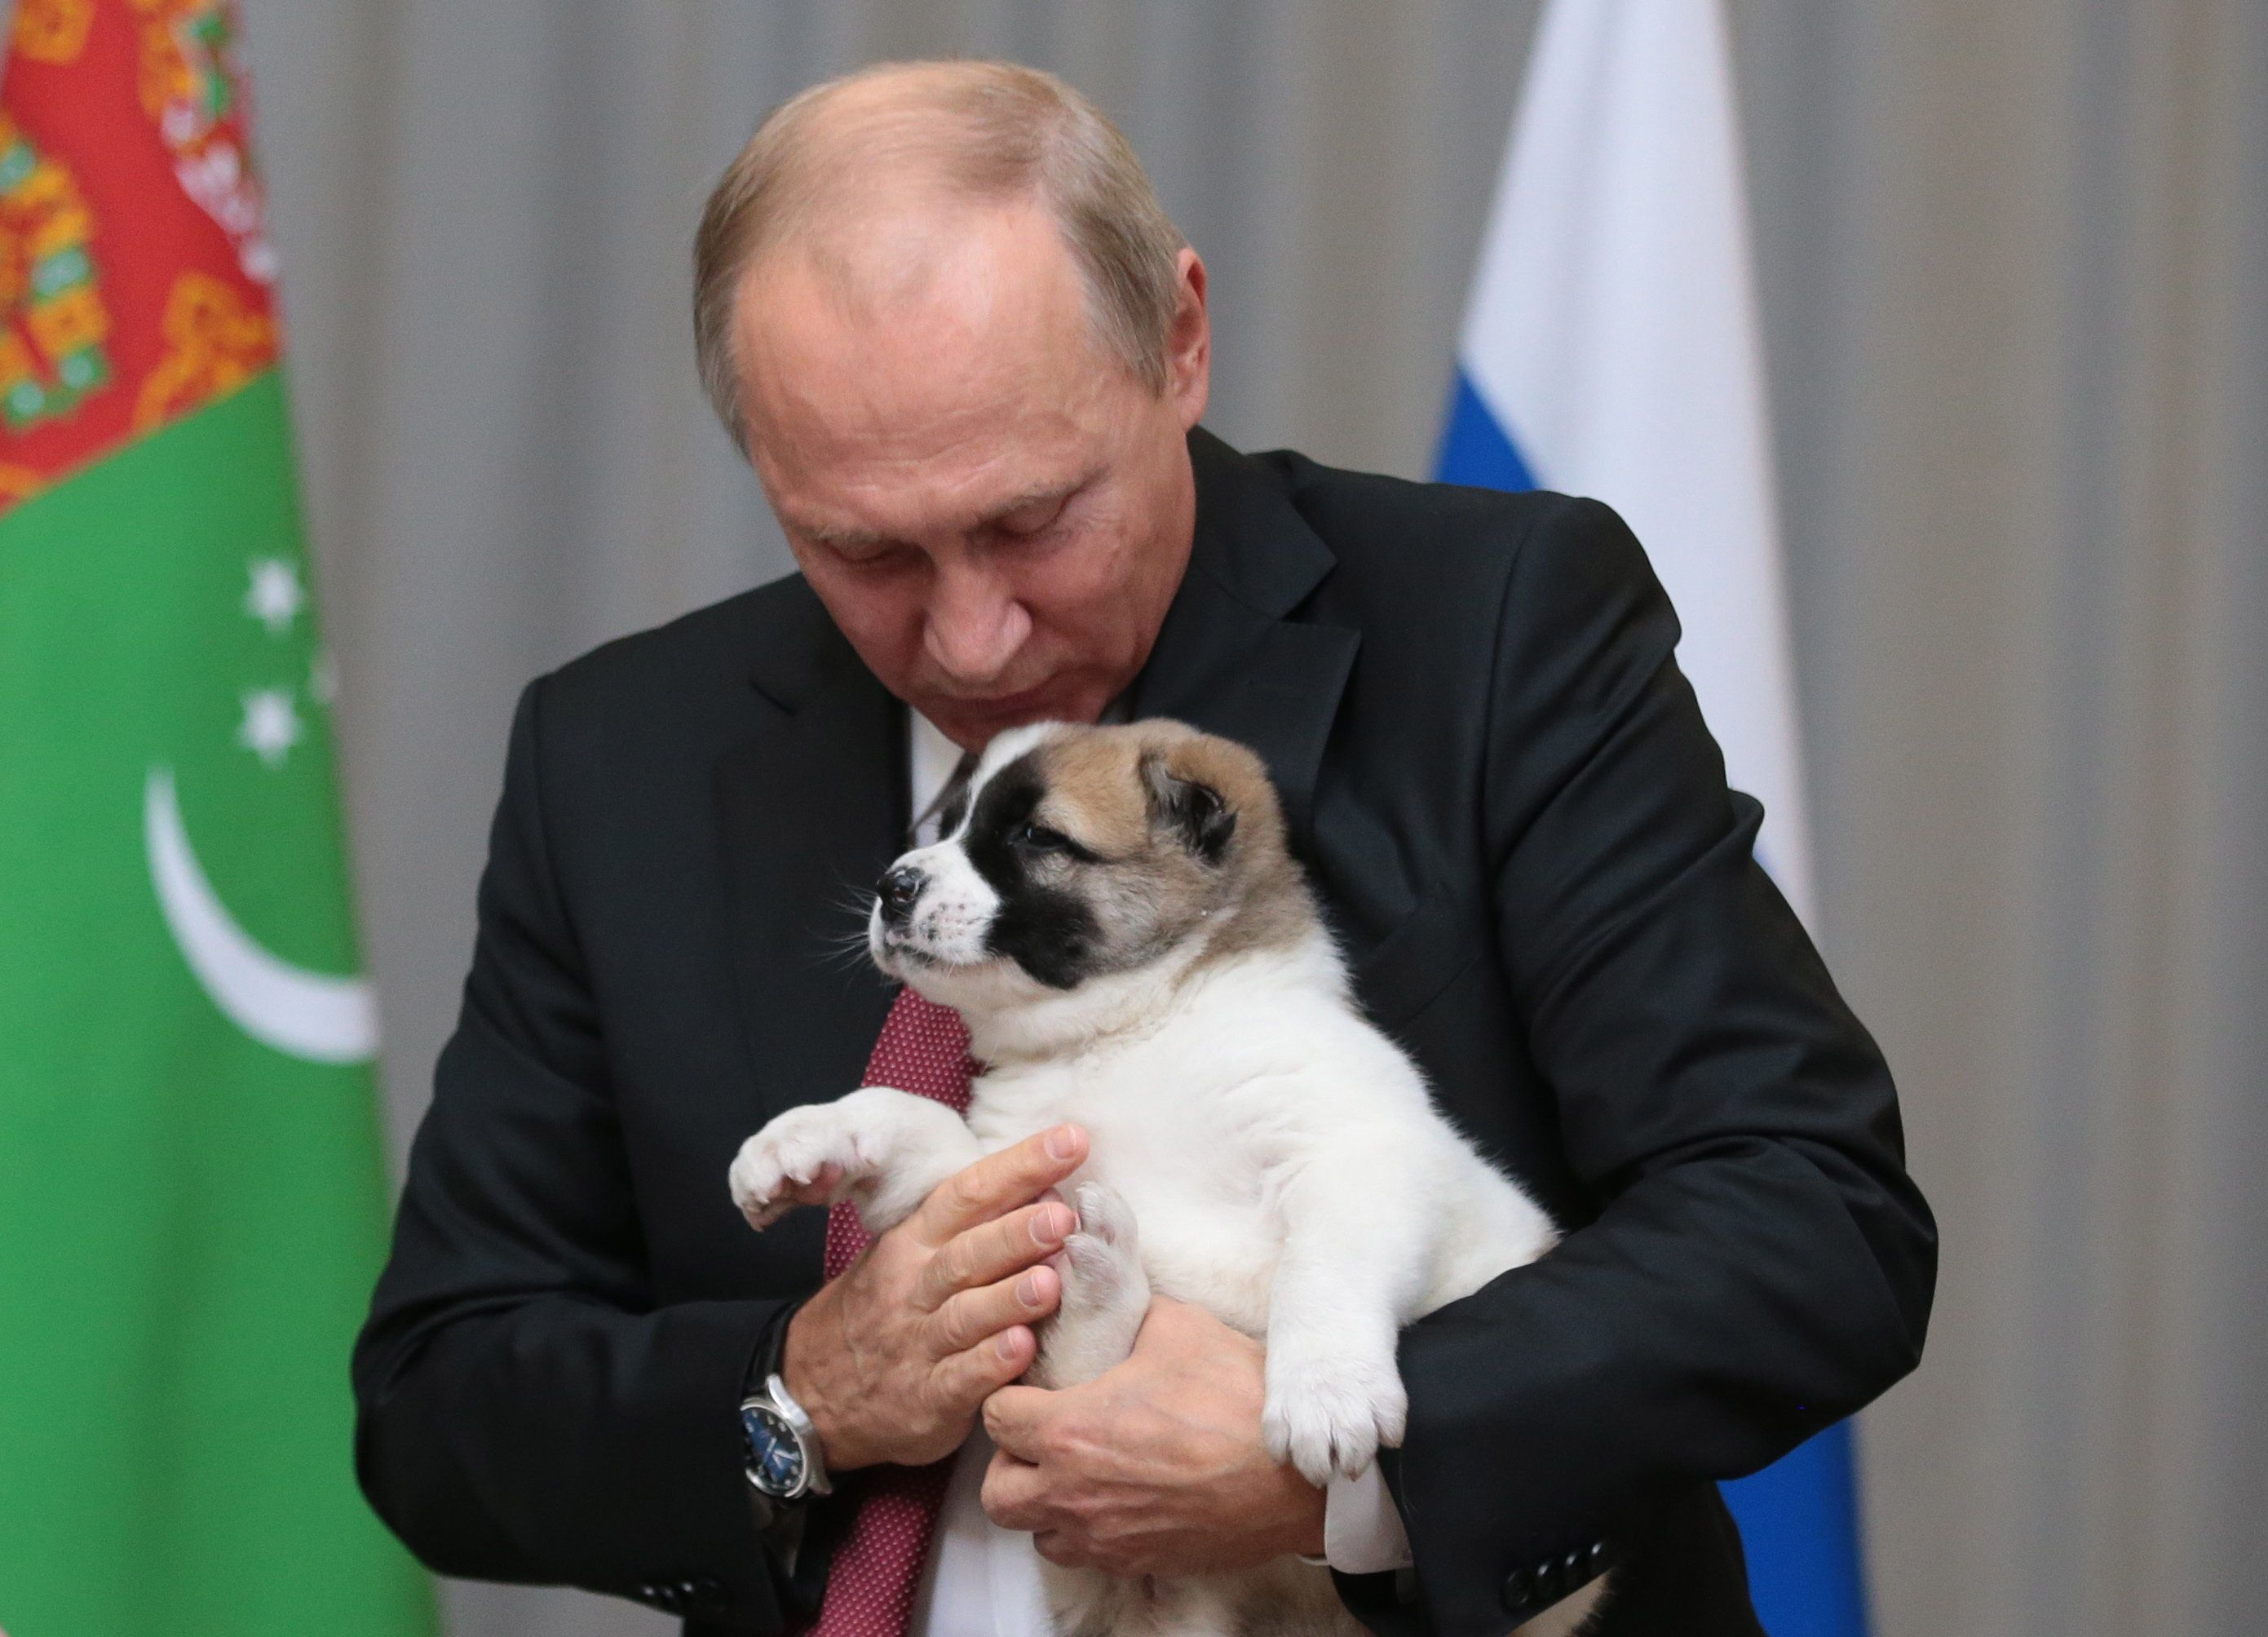 SOCHI, RUSSIA - OCTOBER 11, 2017: Russia's President Vladimir Putin holds the puppy given to him by Turkmenistan's President Gurbanguly Berdimuhamedow for his birthday, during a meeting at a conference centre of the Radisson Blu Resort hotel. Mikhail Metzel/TASS (Photo by Mikhail Metzel\TASS via Getty Images)